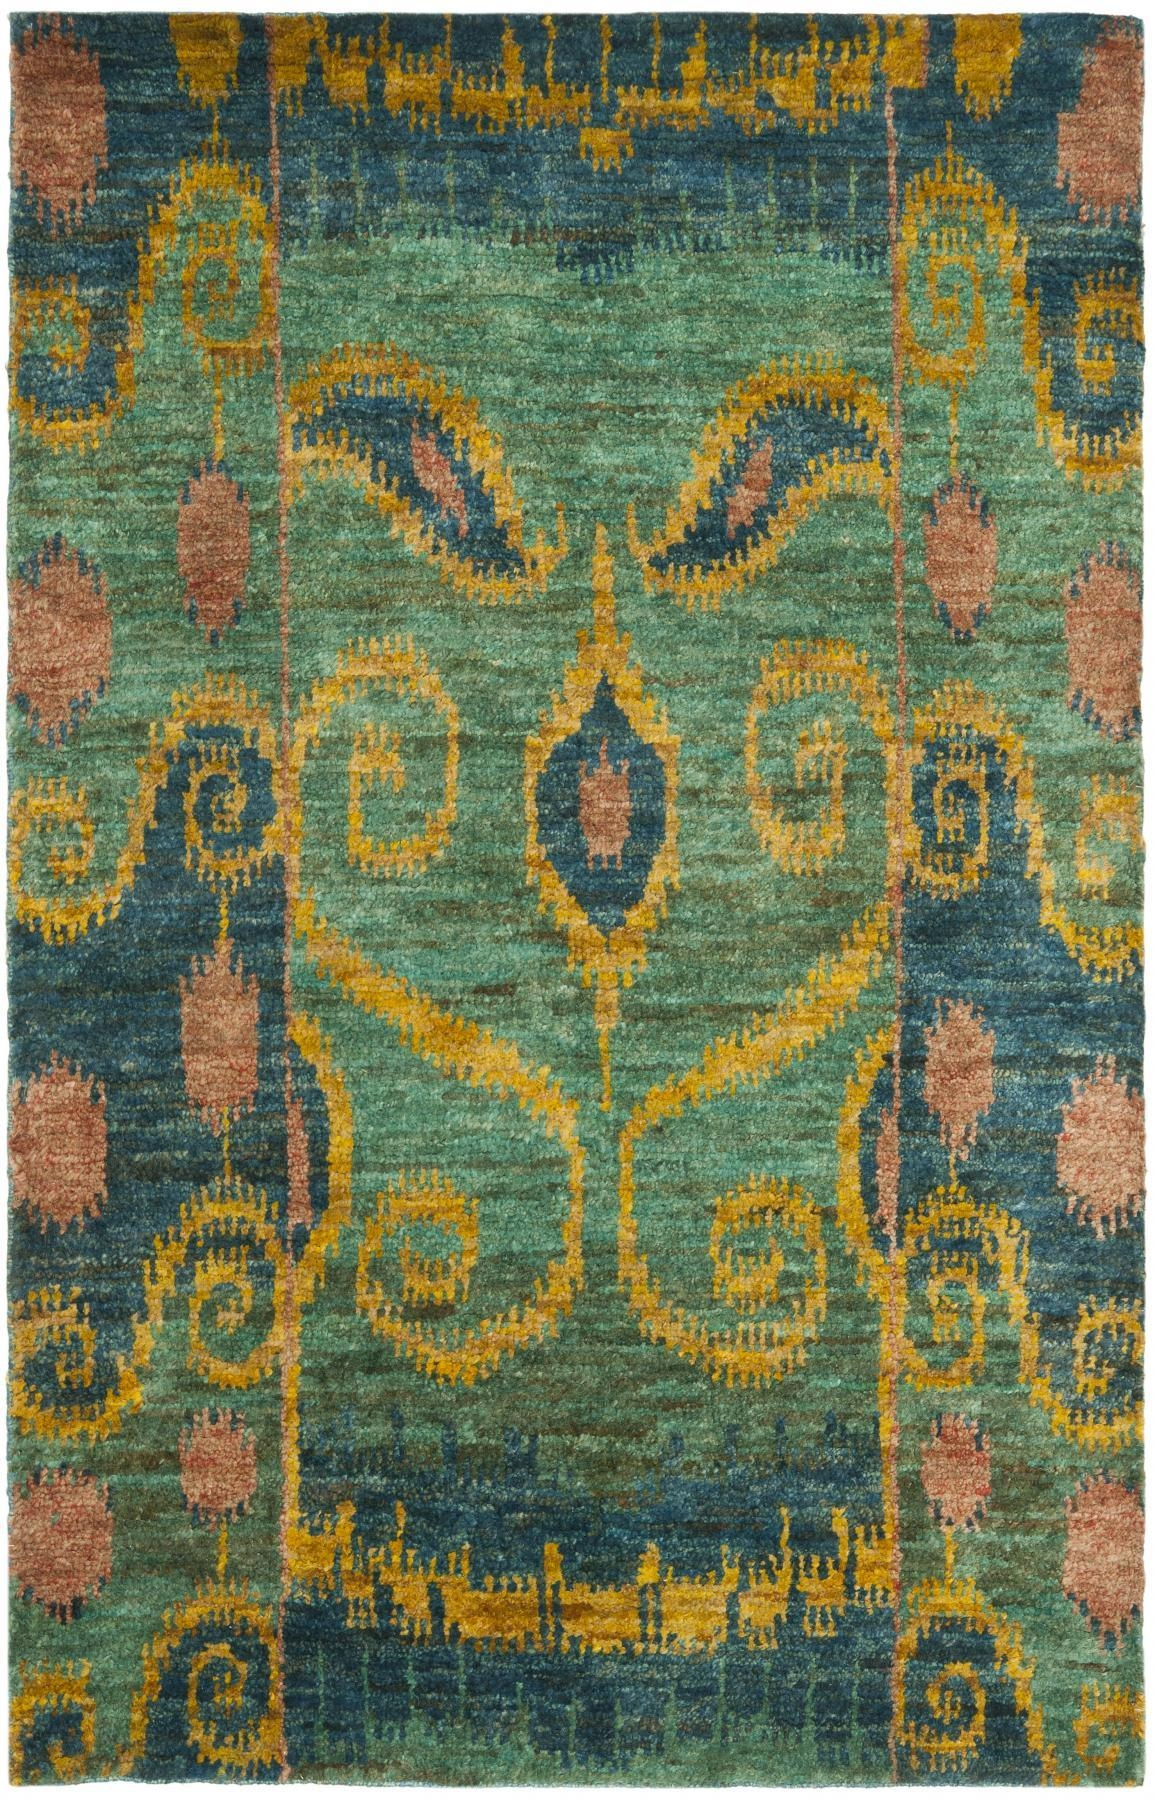 Soft Natural Fiber Rugs Bohemian Collection Safavieh Intended For Bohemian Rugs (Image 14 of 15)